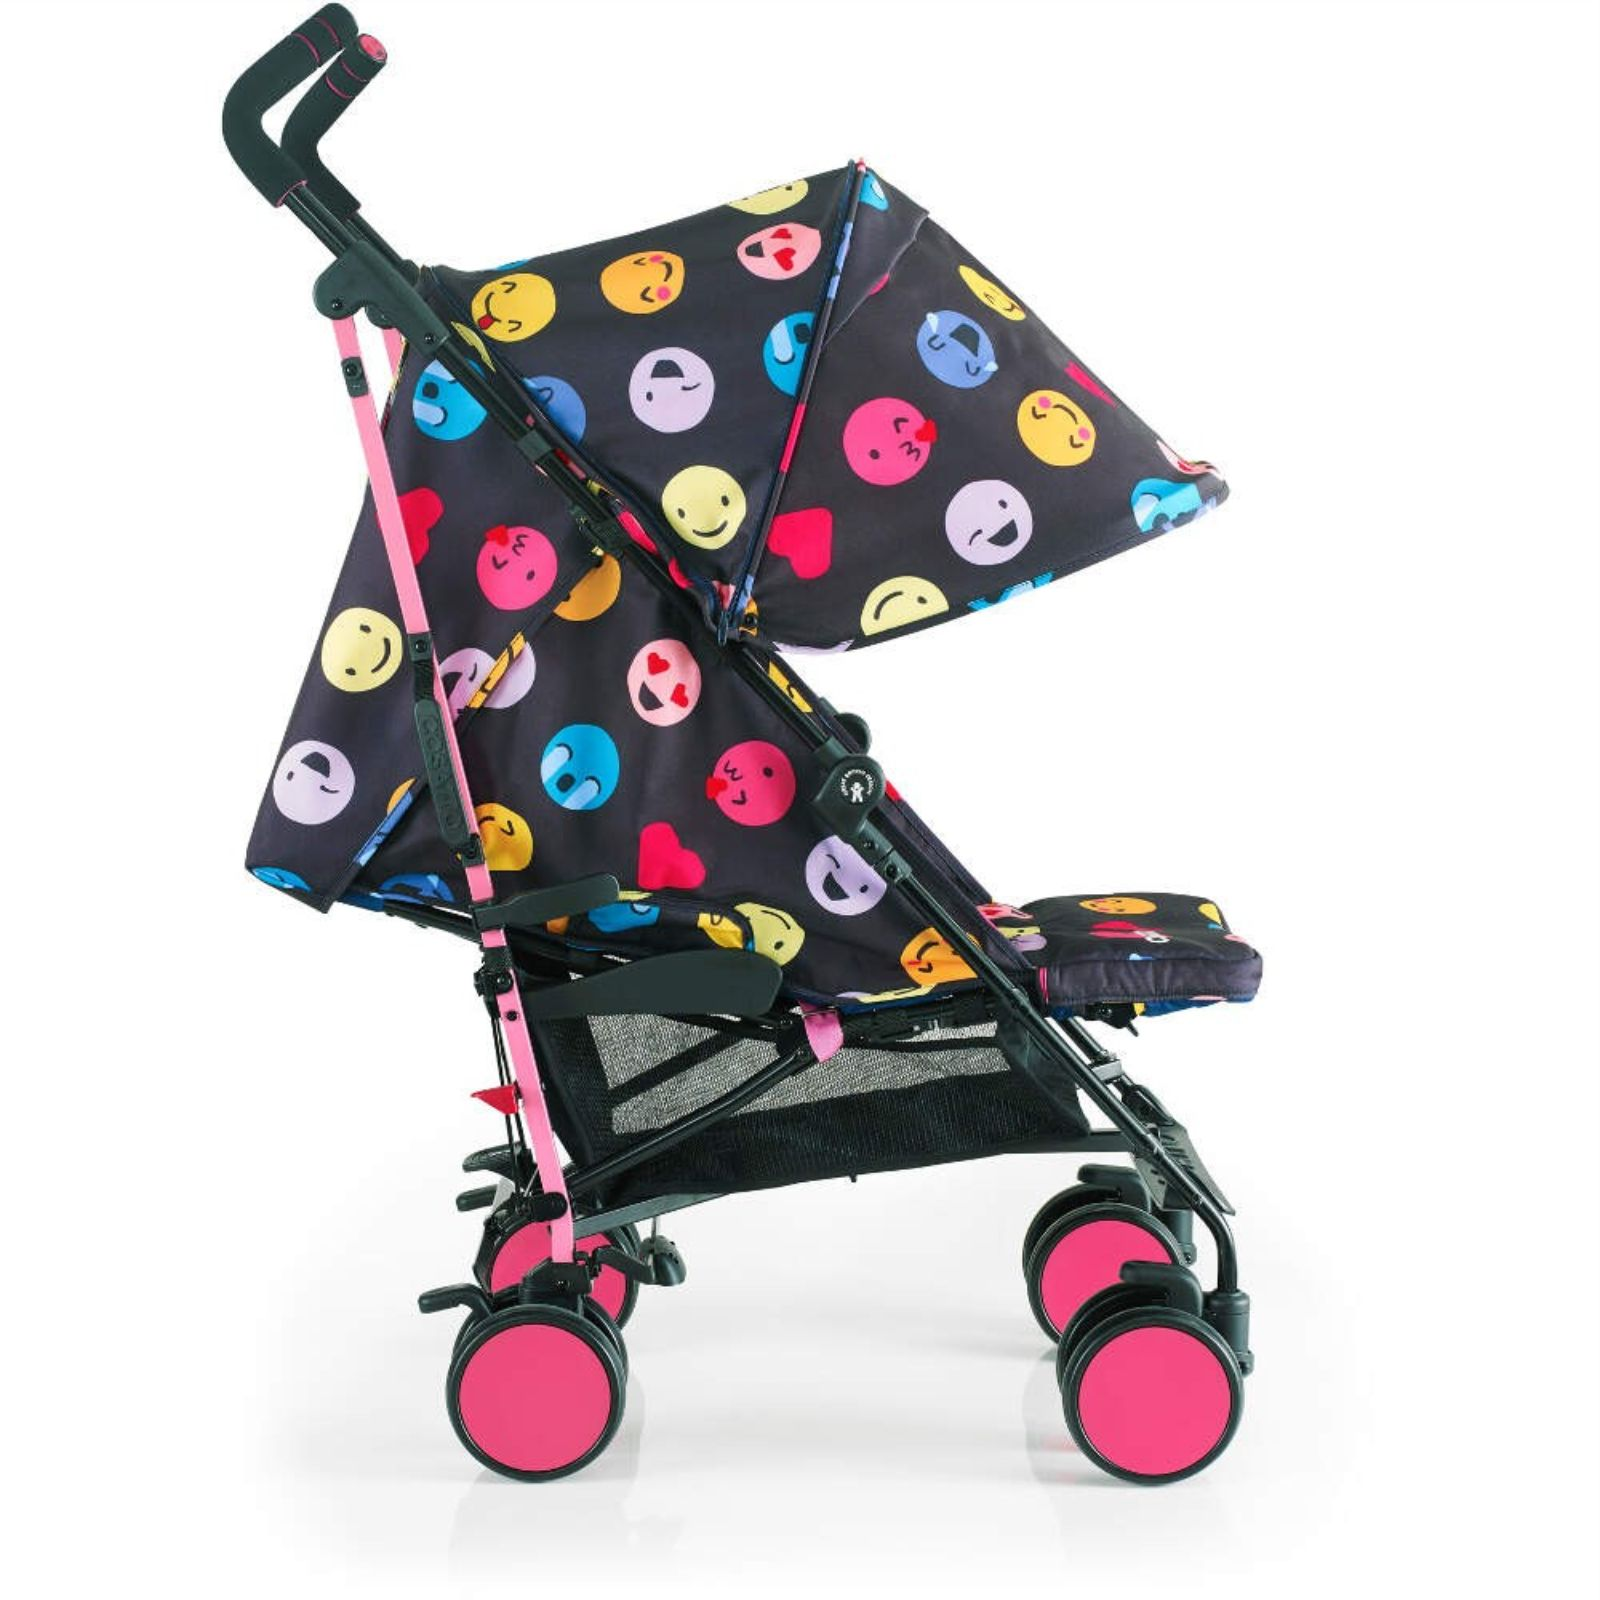 Cosatto Supa 2018 Pushchair Stroller Lolz Buy At Online4baby